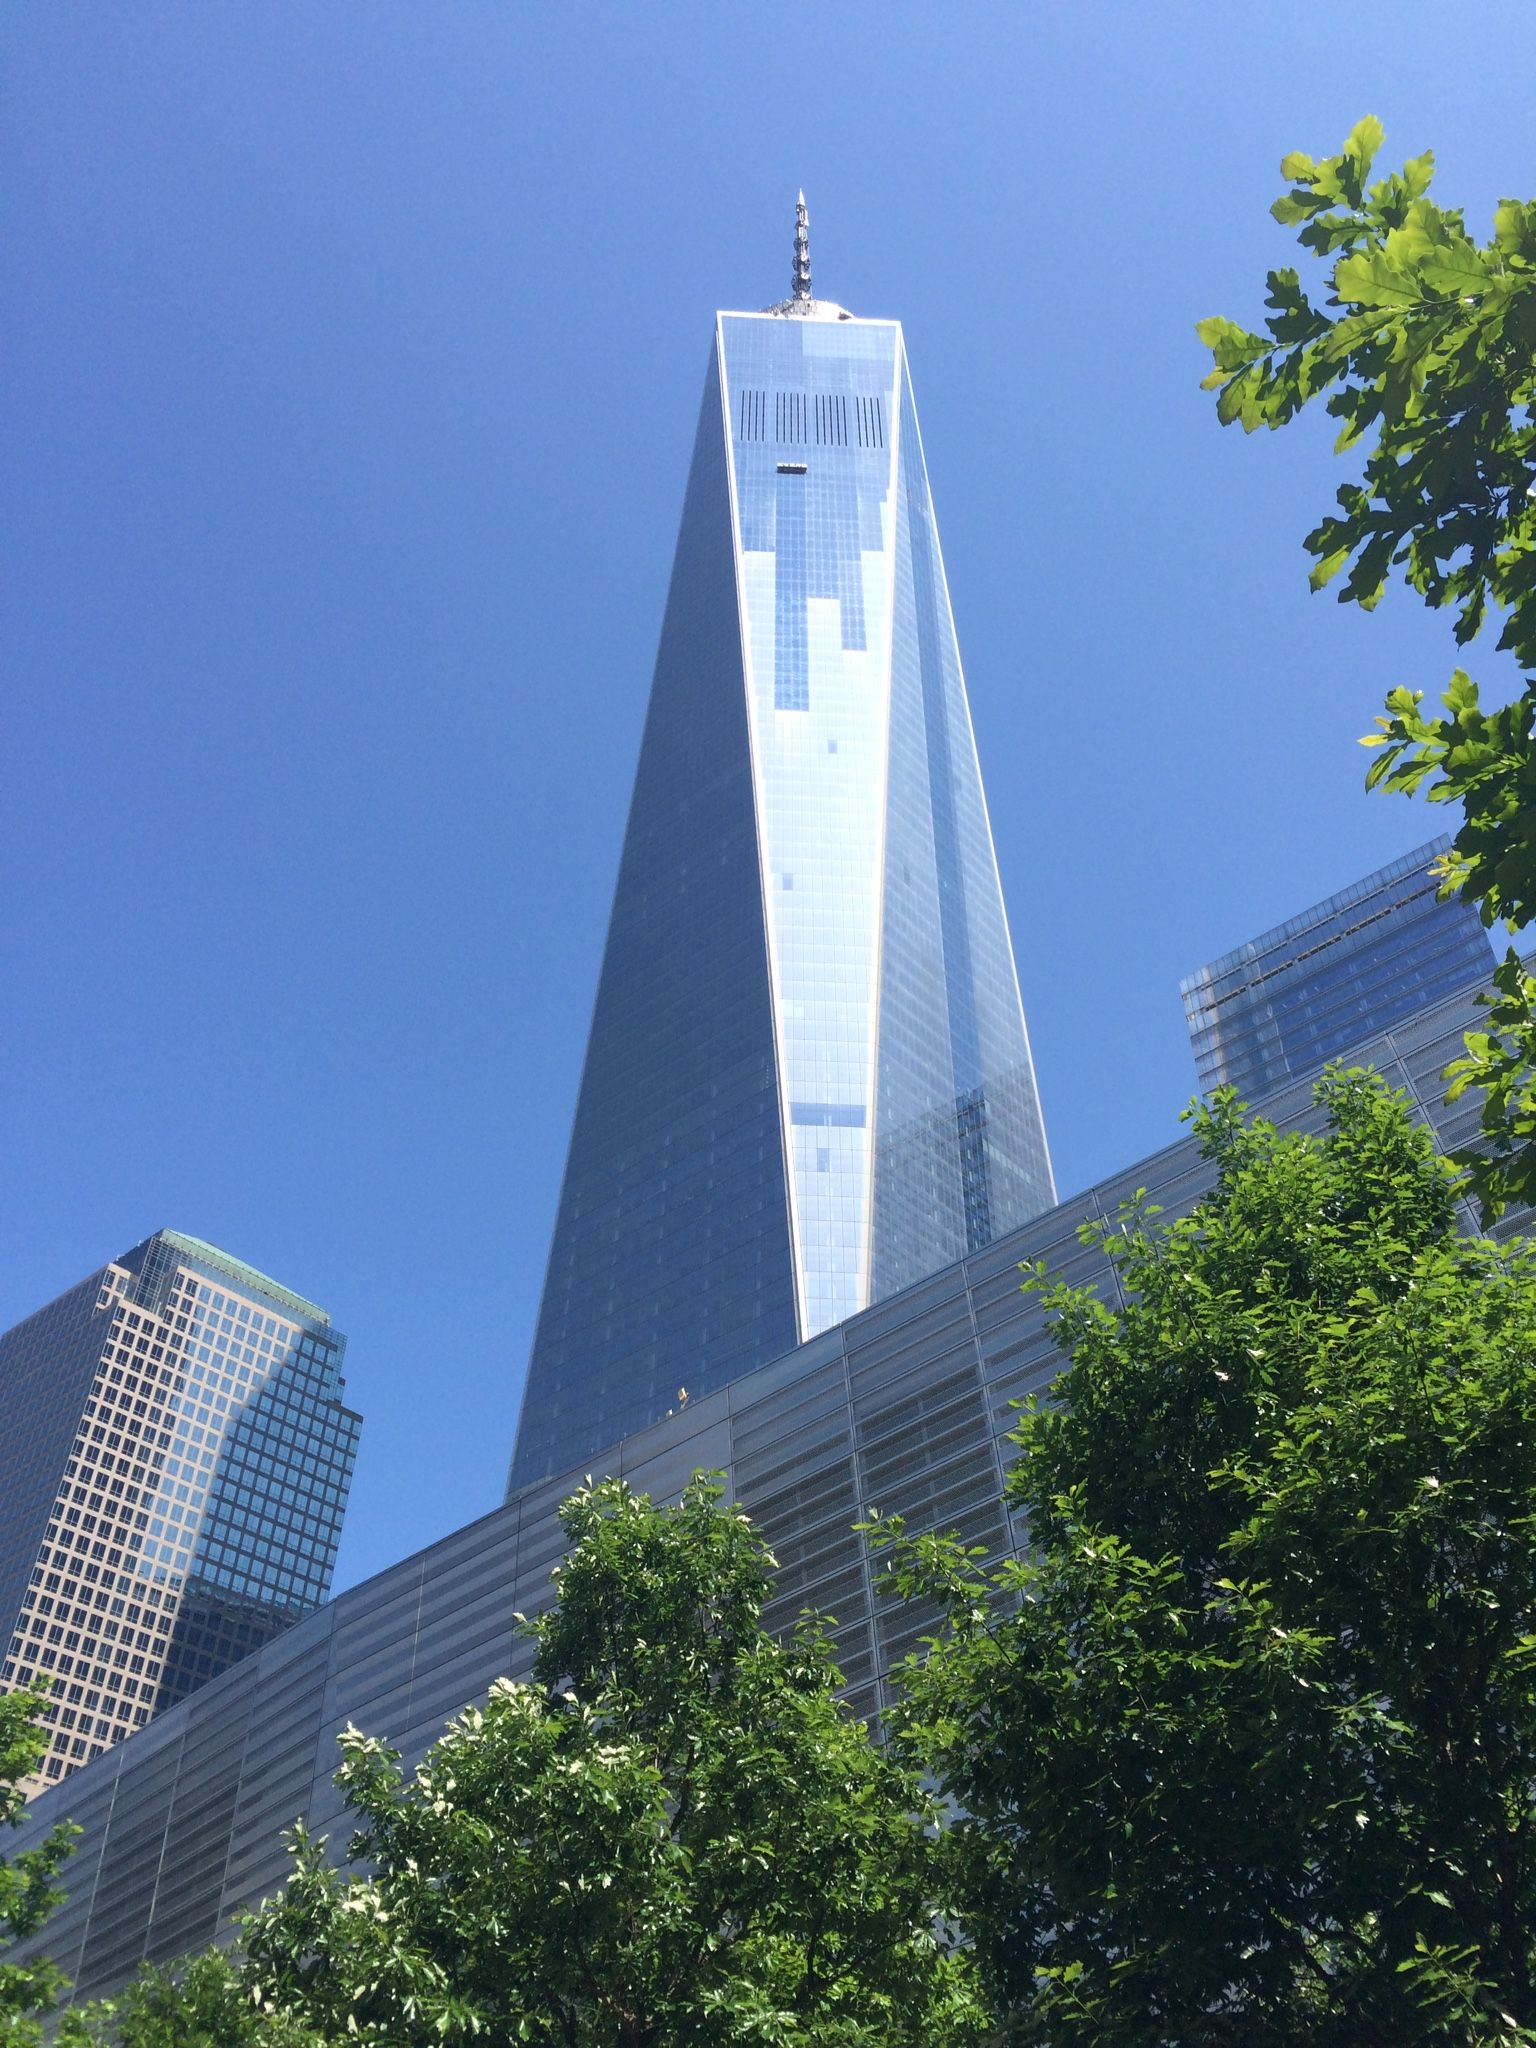 """Fri 5/29/15 grand opening day of """"One World Observatory"""" scheduled entry time,  2:15pm total visitors as we entered 5.424 Now Arriving! Added quickly to 6,928 upon departing. We will never see those #'s again as they go up in History!!"""